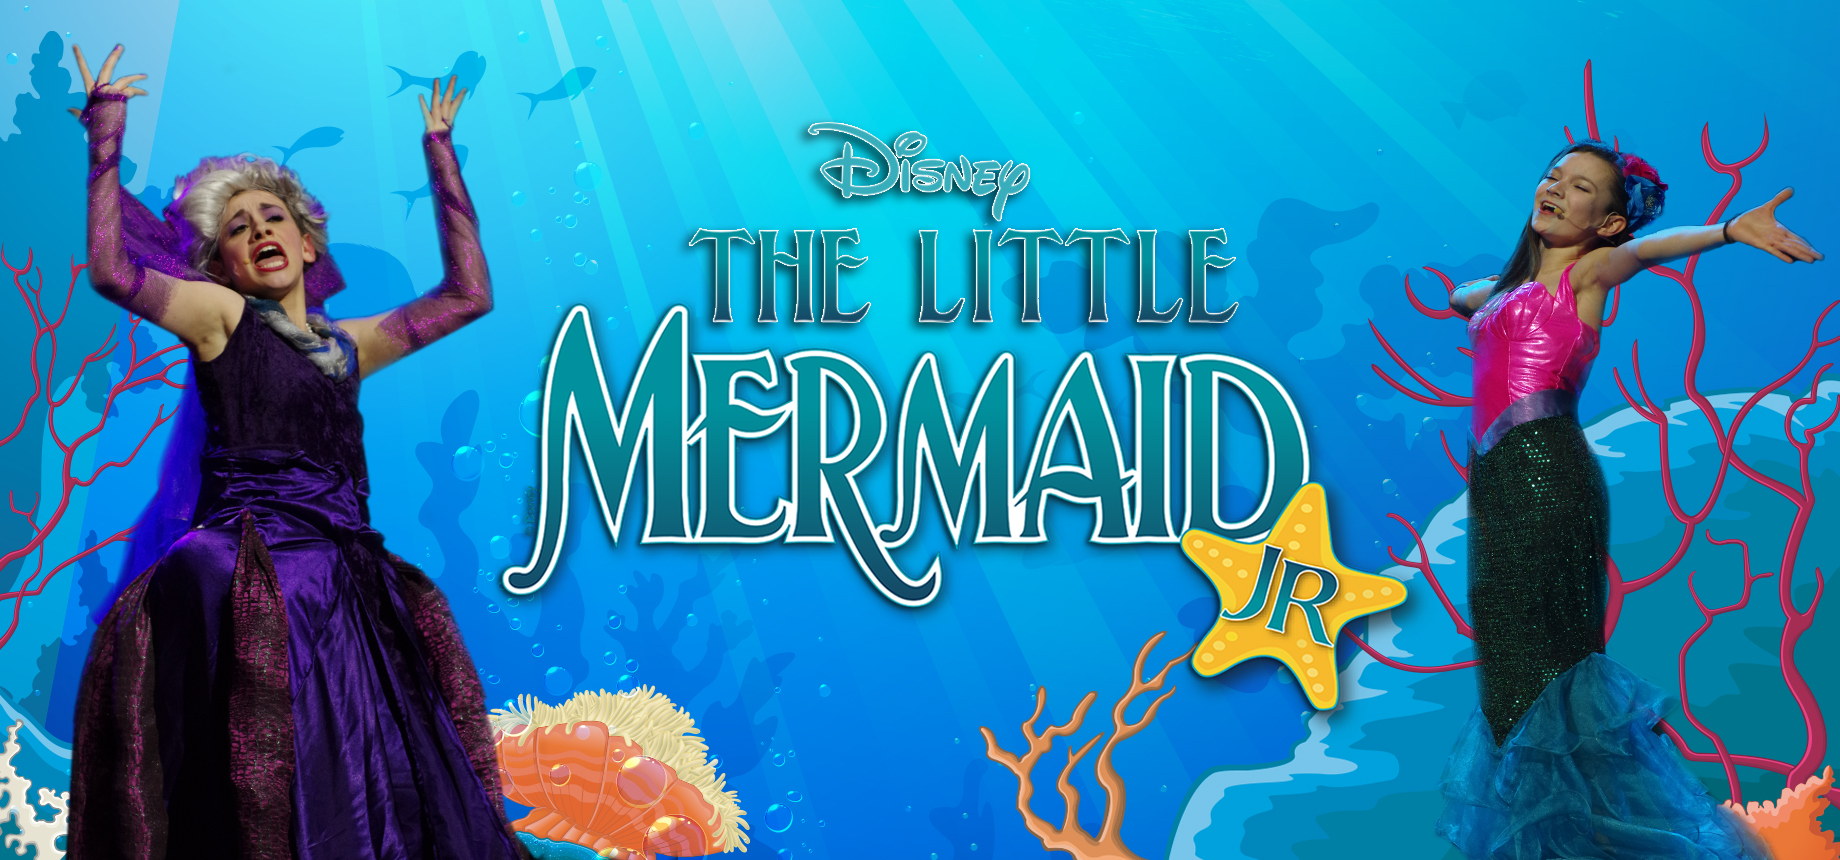 the little mermaid response These mermaid jokes are hillarious -pepa d reply jan 31, 2018 at 1:27 pm  anonymous  any ideas for a little mermaid four year olds party reply oct 10.